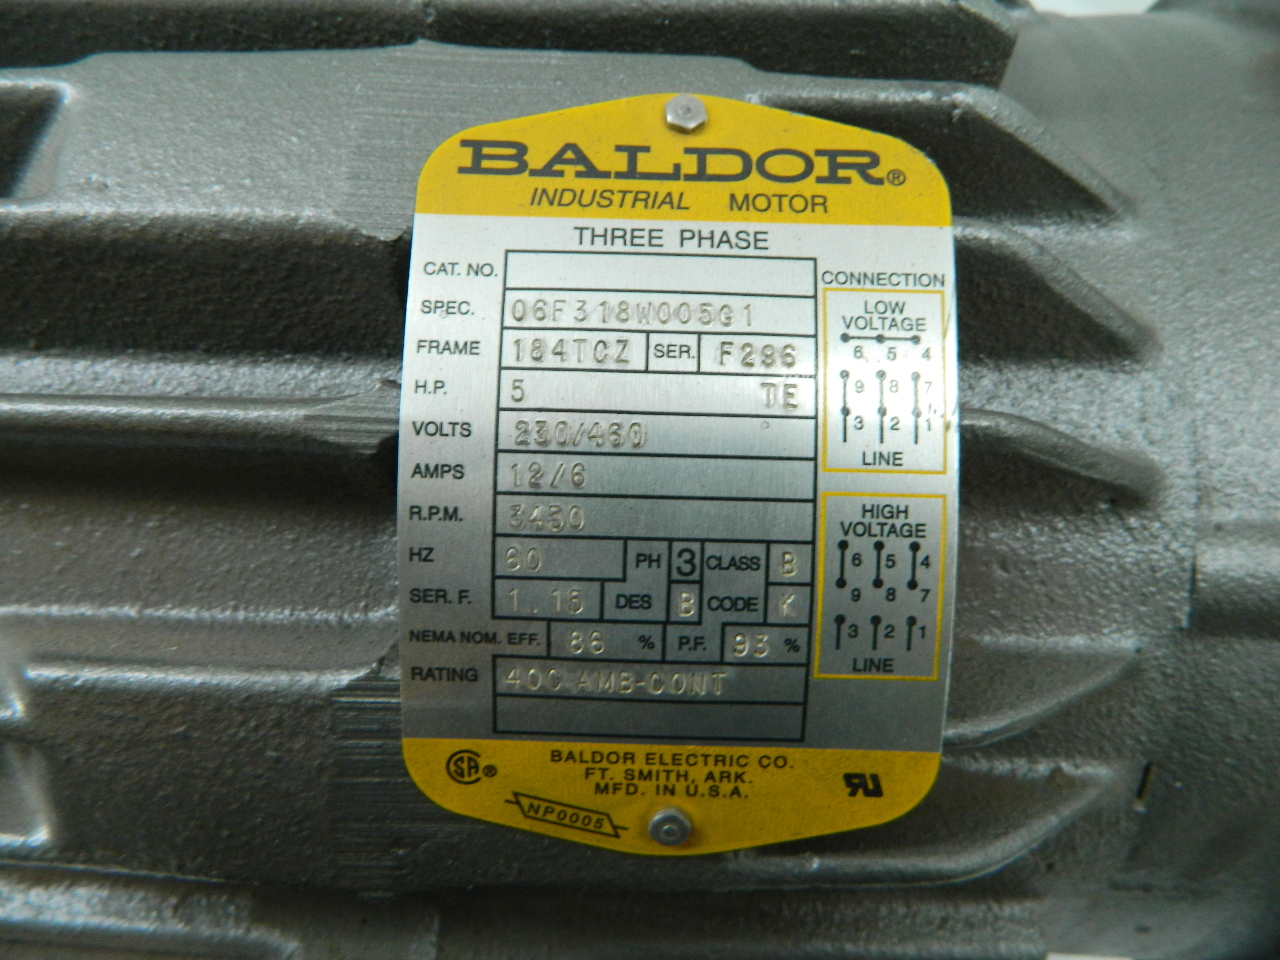 ip5524 baldor 5hp electric motor 3450 rpm 184tcz frame te 208 460vac 3 phase 3?resized680%2C510 baldor 10 hp electric motor wiring diagram efcaviation com baldor motors wiring diagram 3 phase at nearapp.co